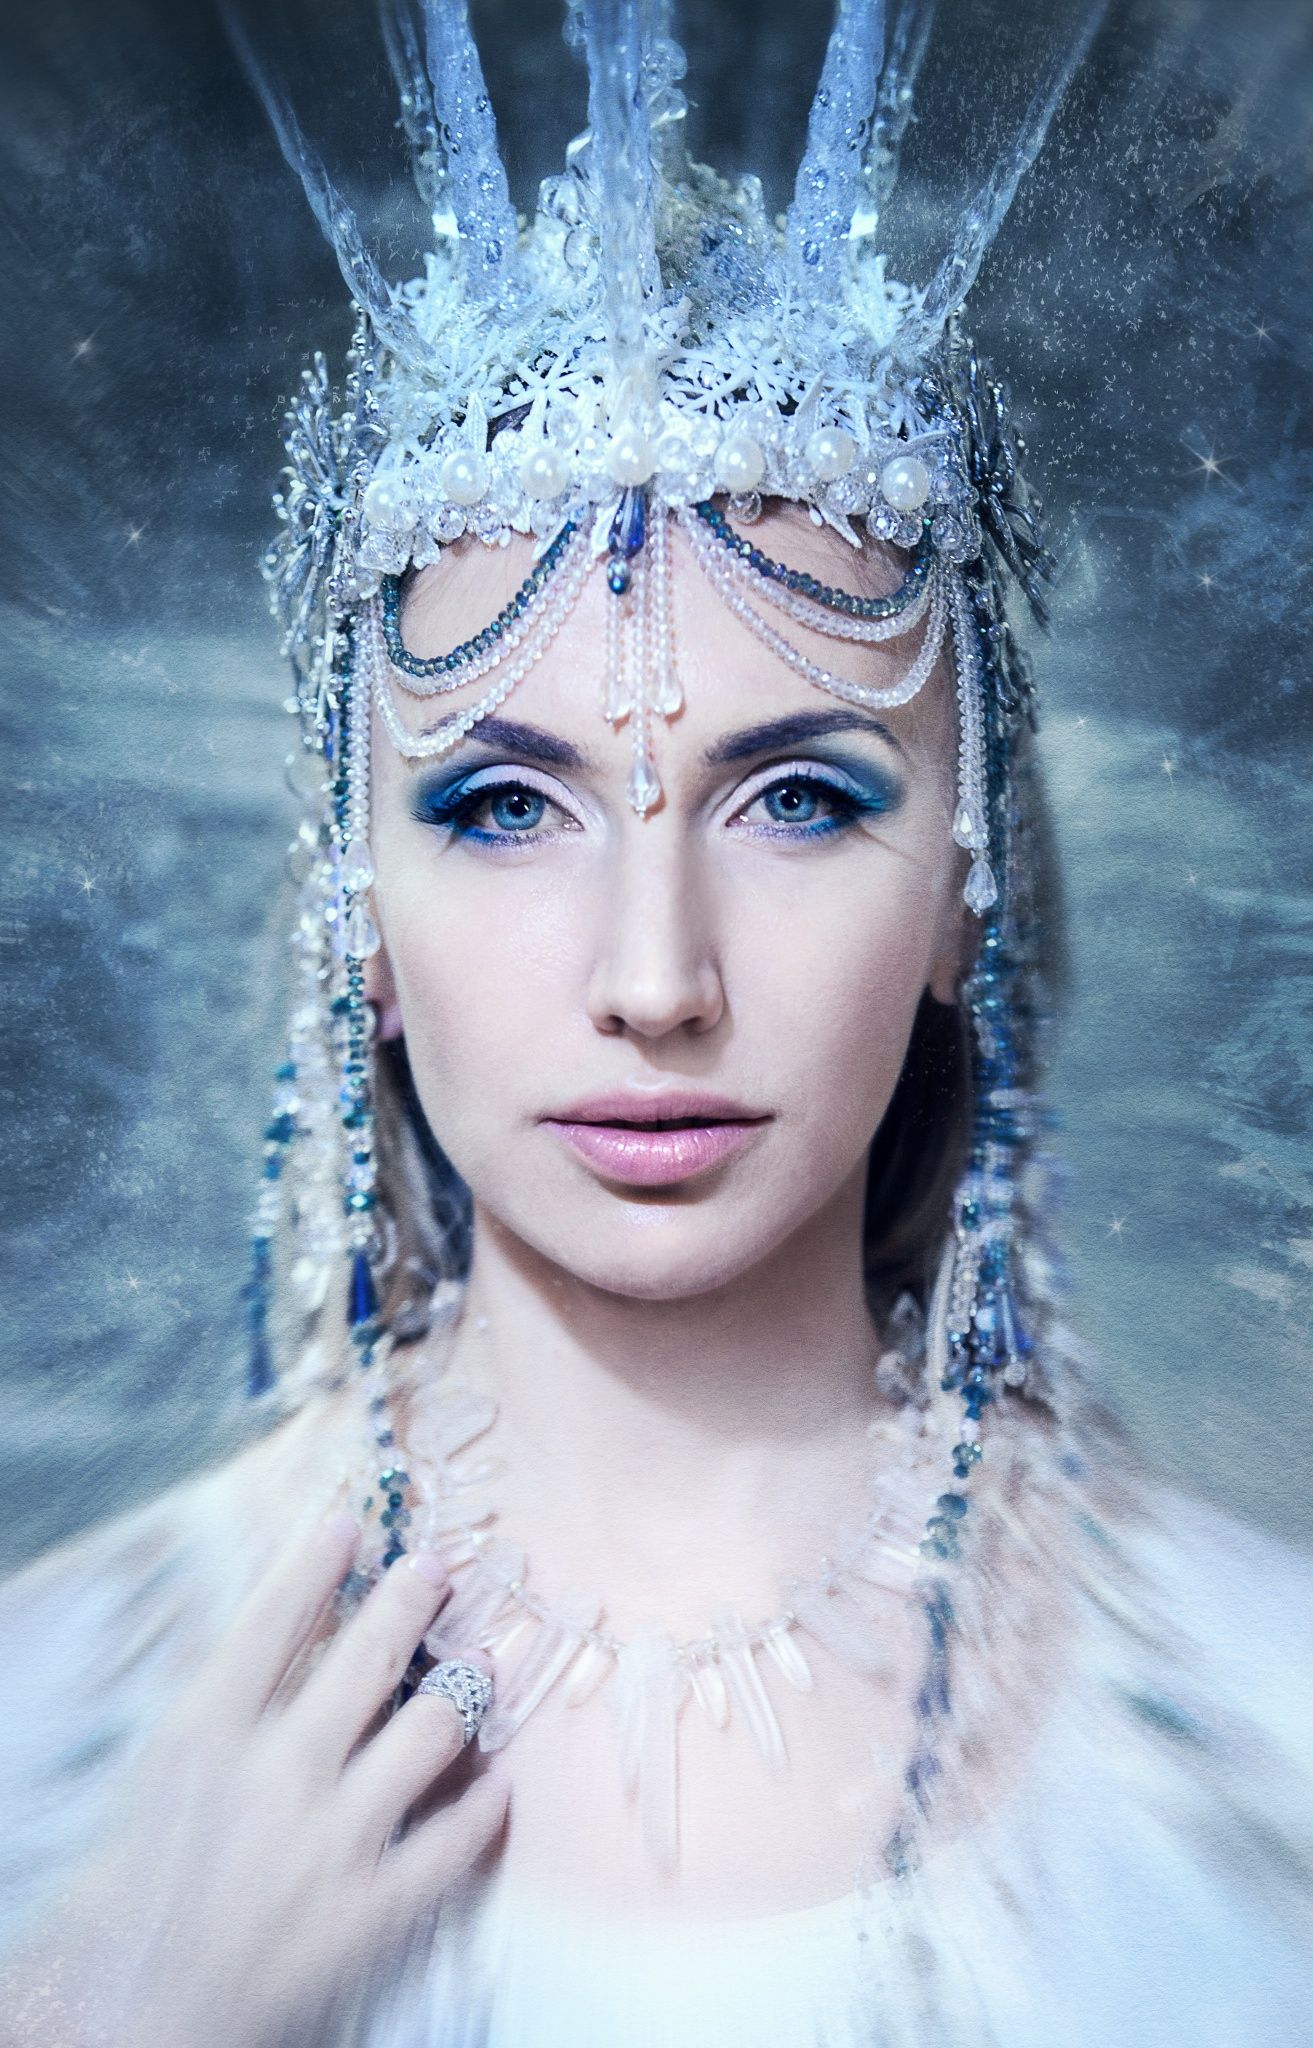 The snow queen null (With images) Snow queen, Snow